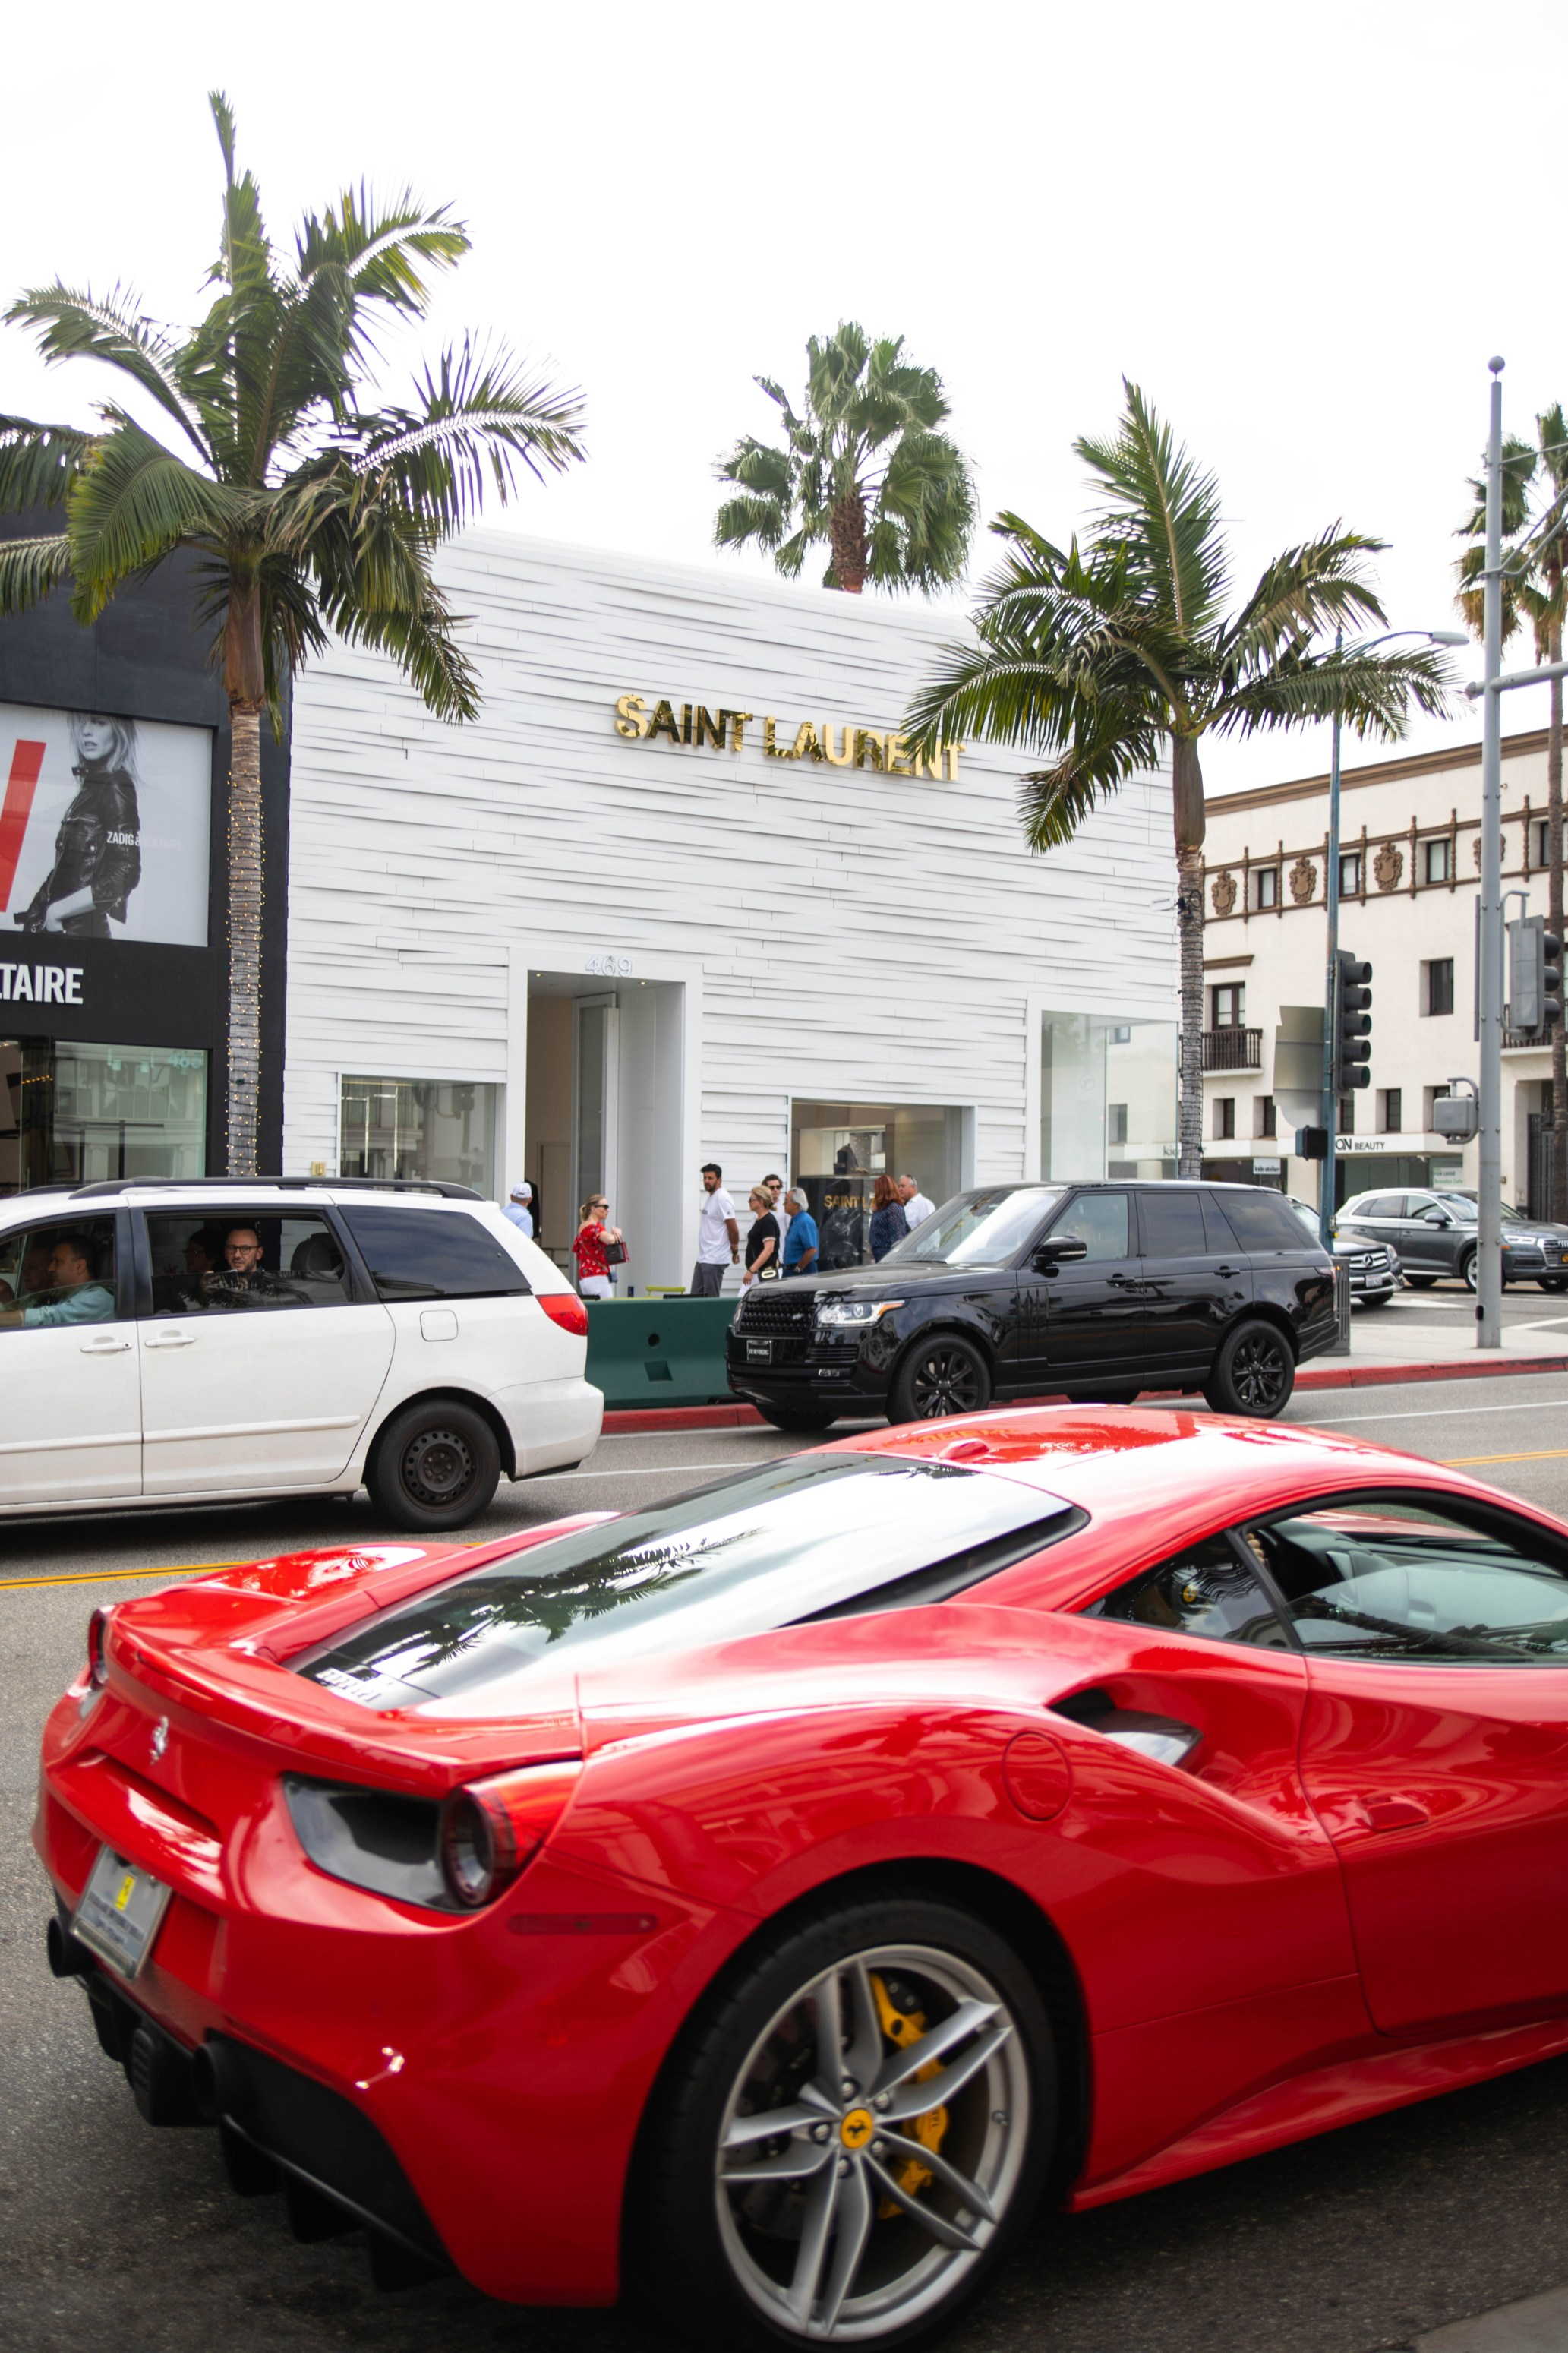 Beverly Hills: The Complete Traveler's Guide